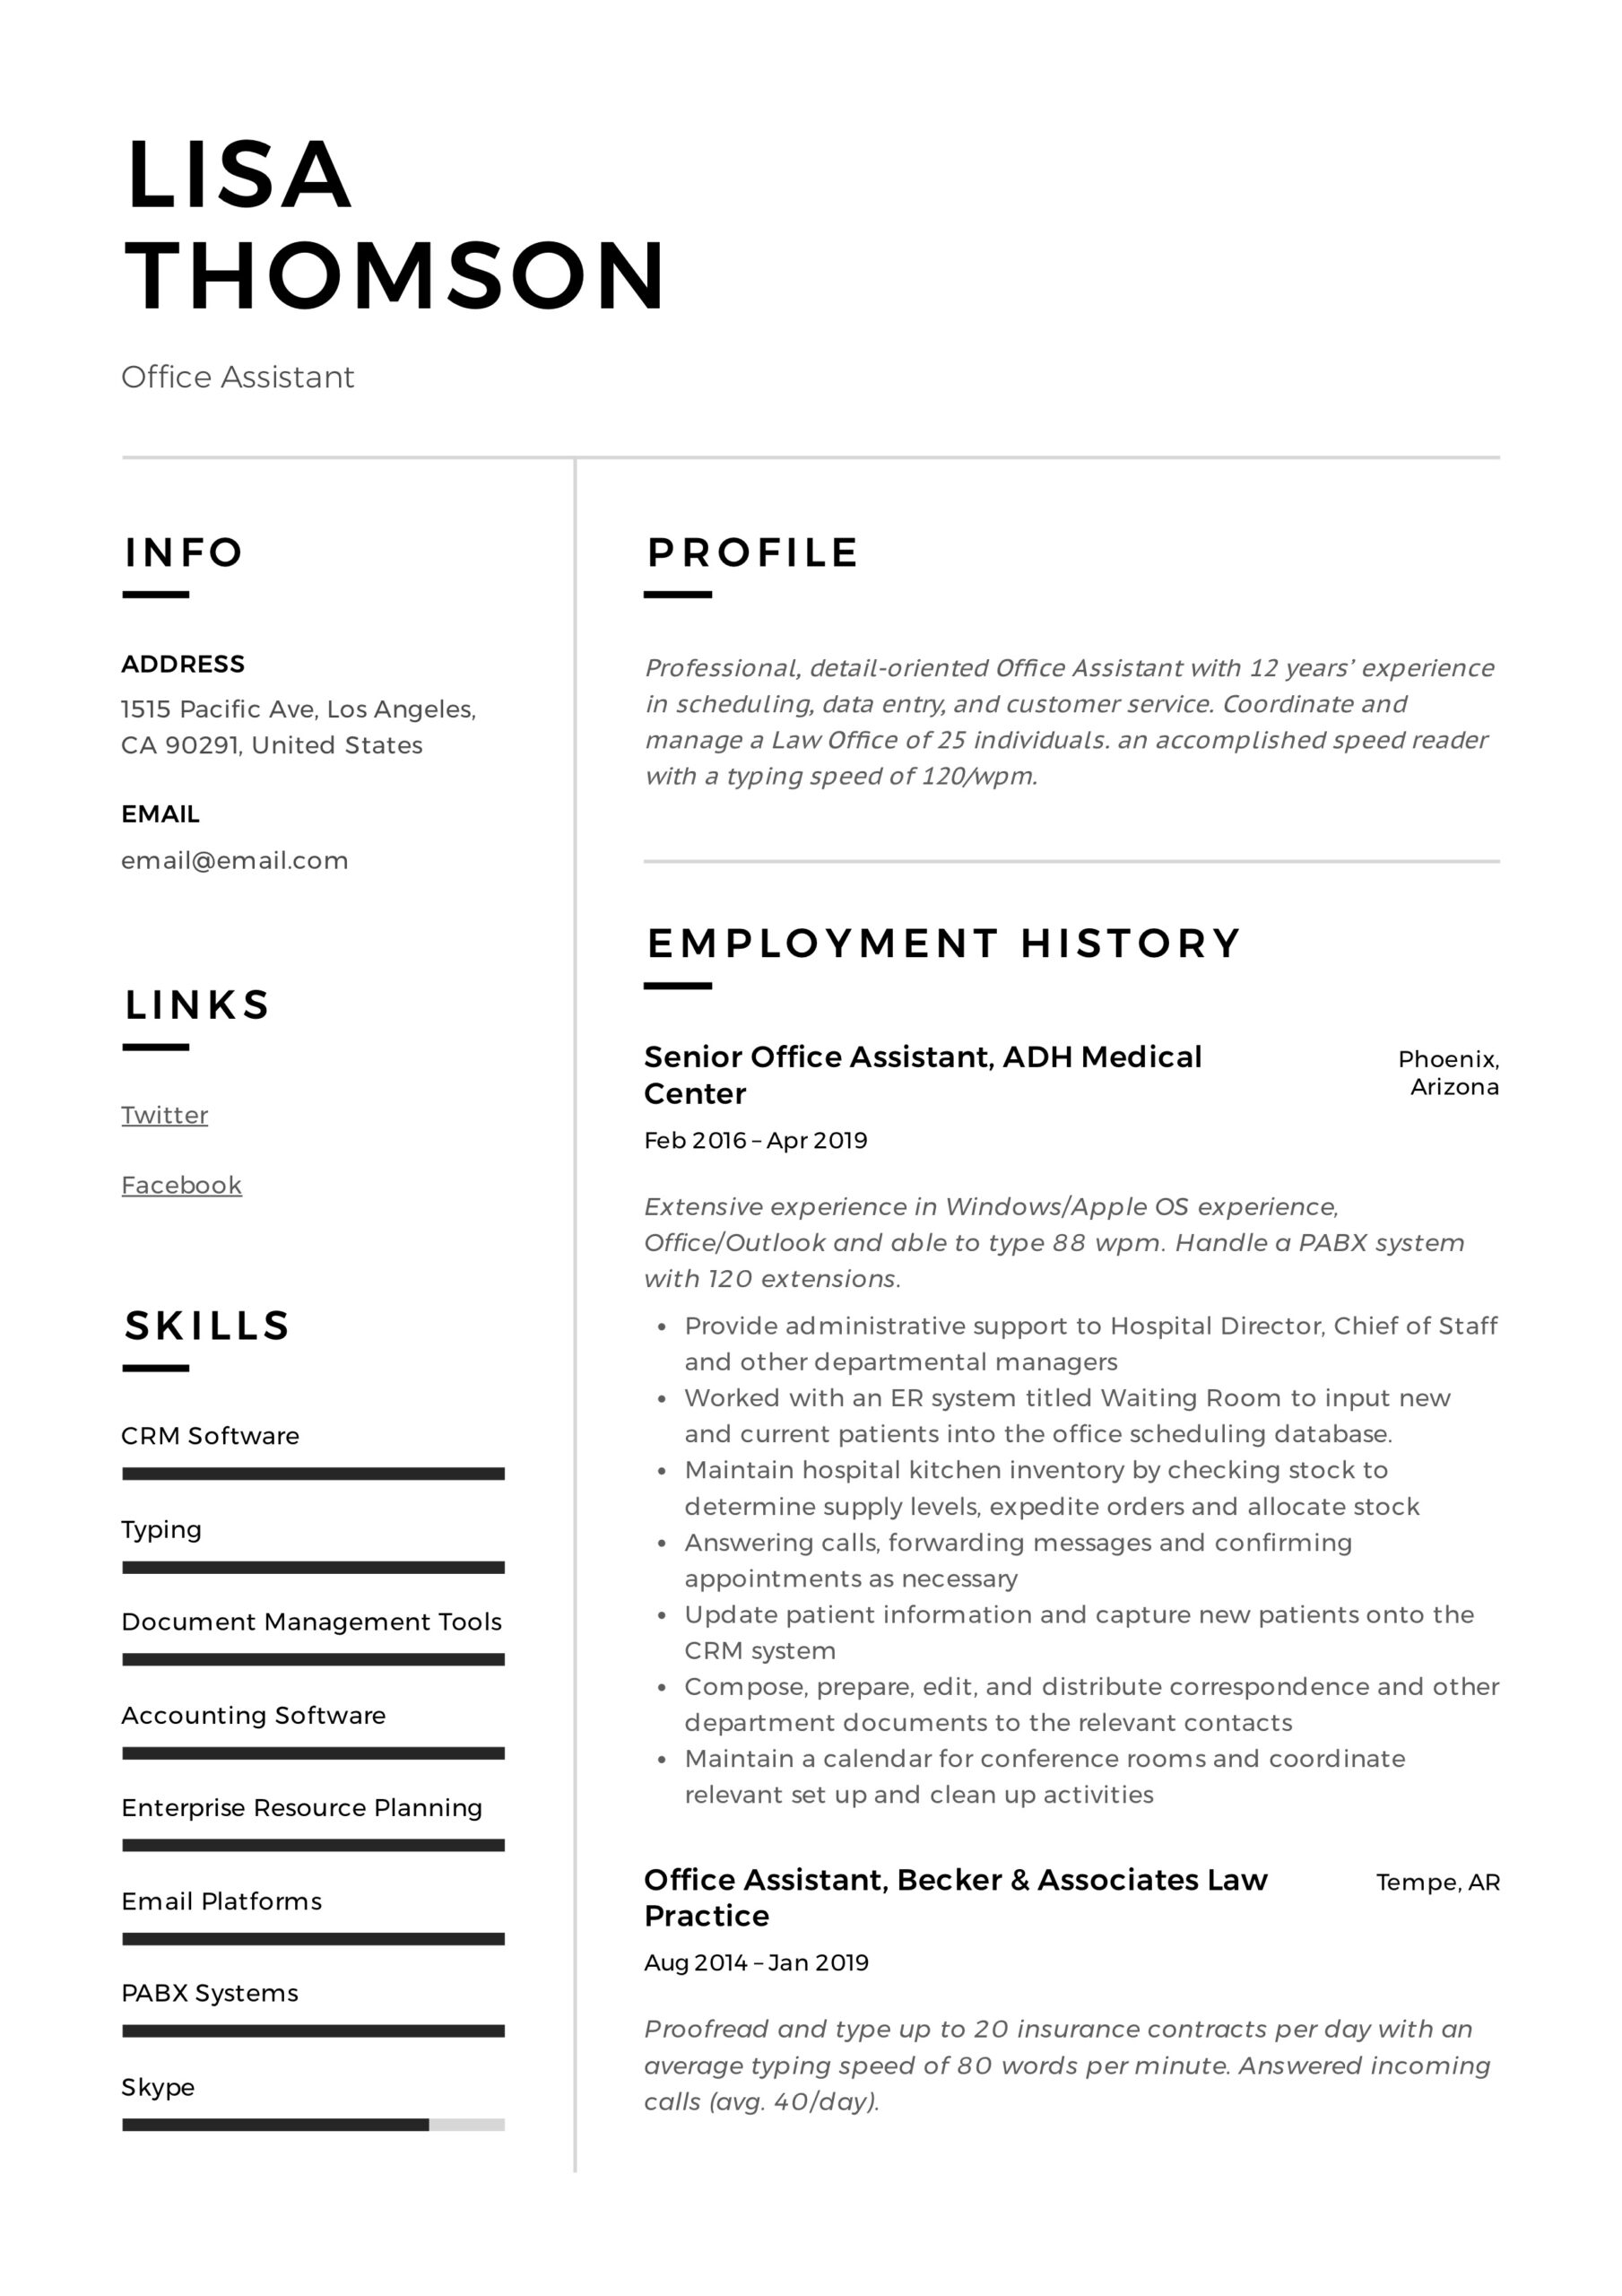 office assistant resume writing guide templates description lisa thomson clinic nurse Resume Office Assistant Resume Description